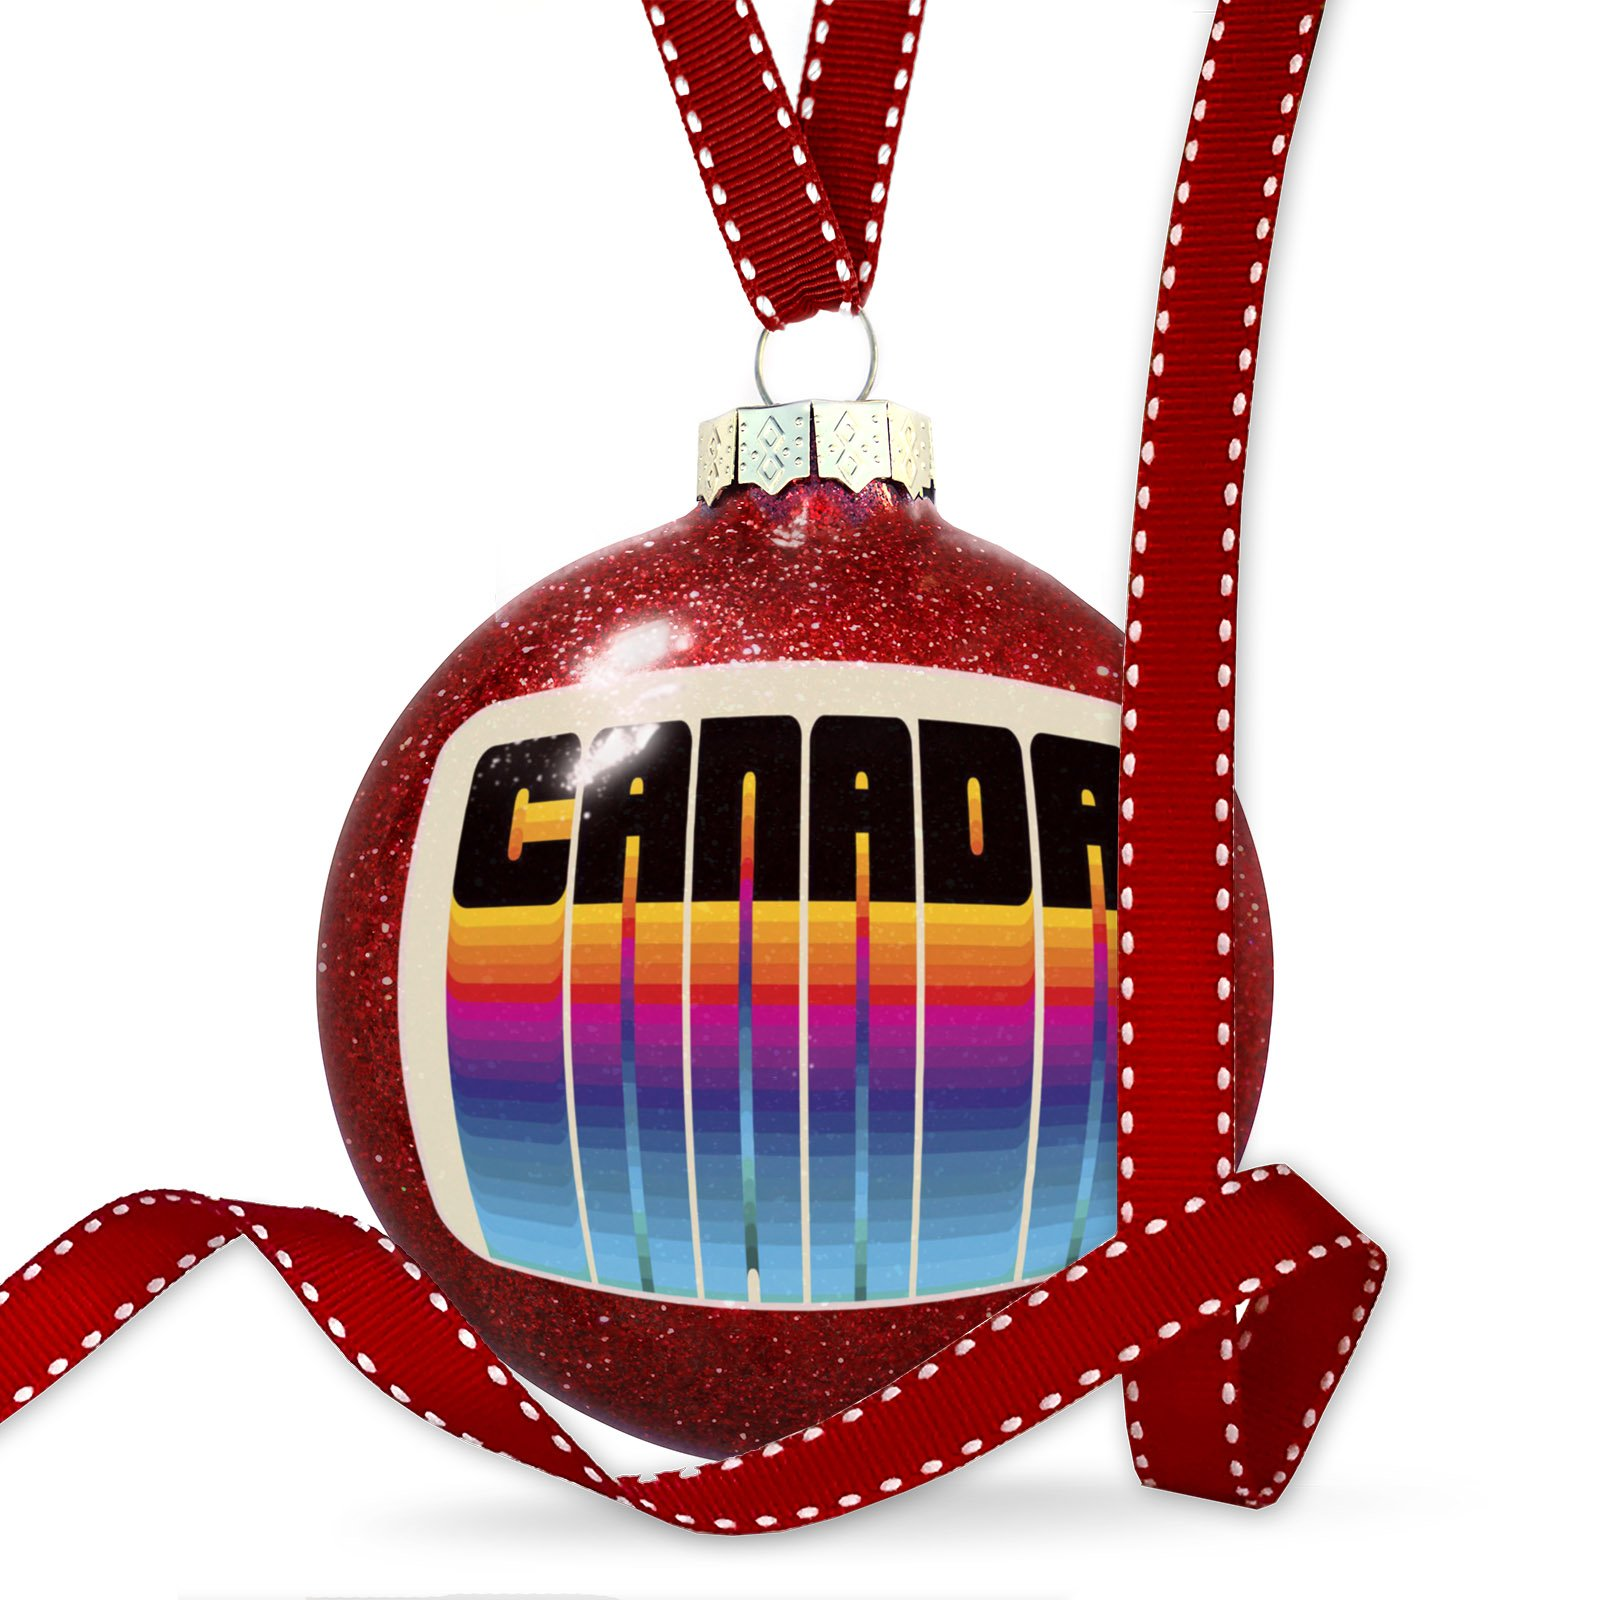 Christmas Decoration Retro Cites States Countries Canada Ornament by NEONBLOND (Image #1)